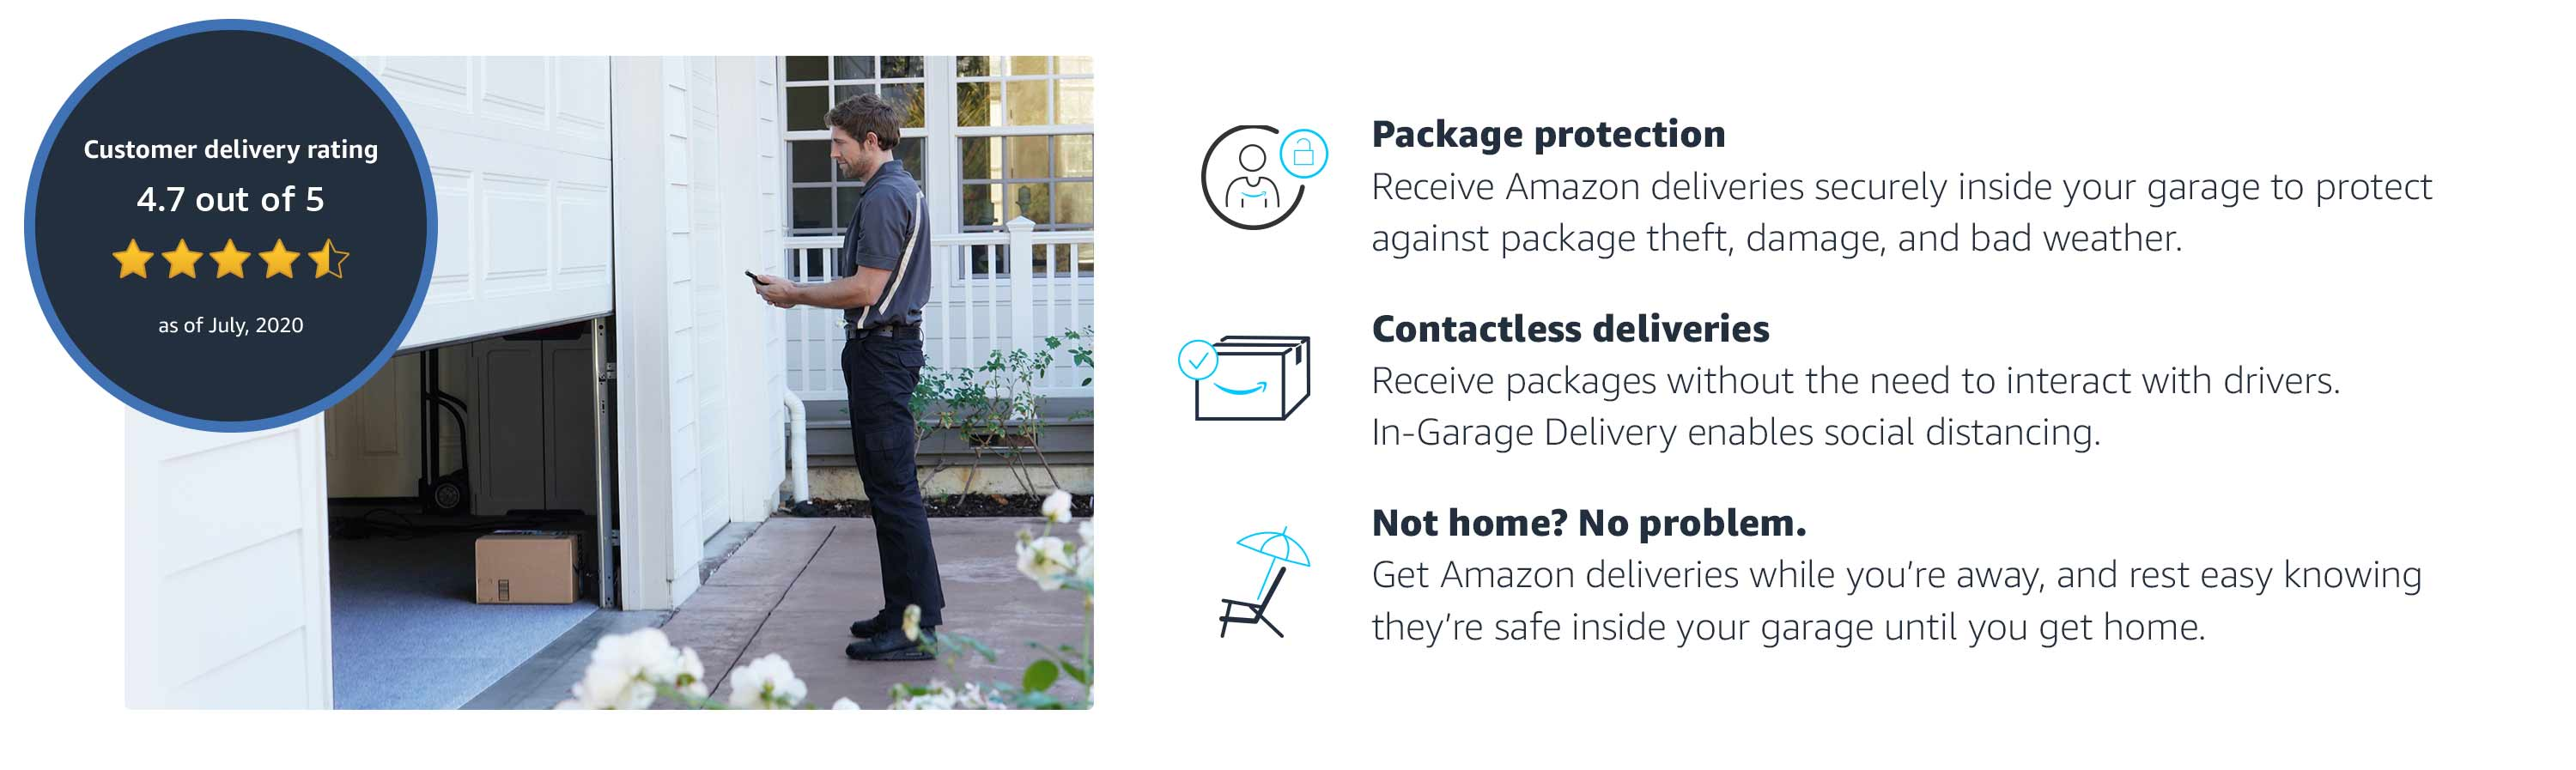 Benefits include package protection, contactless deliveries, and deliveries while you're away.